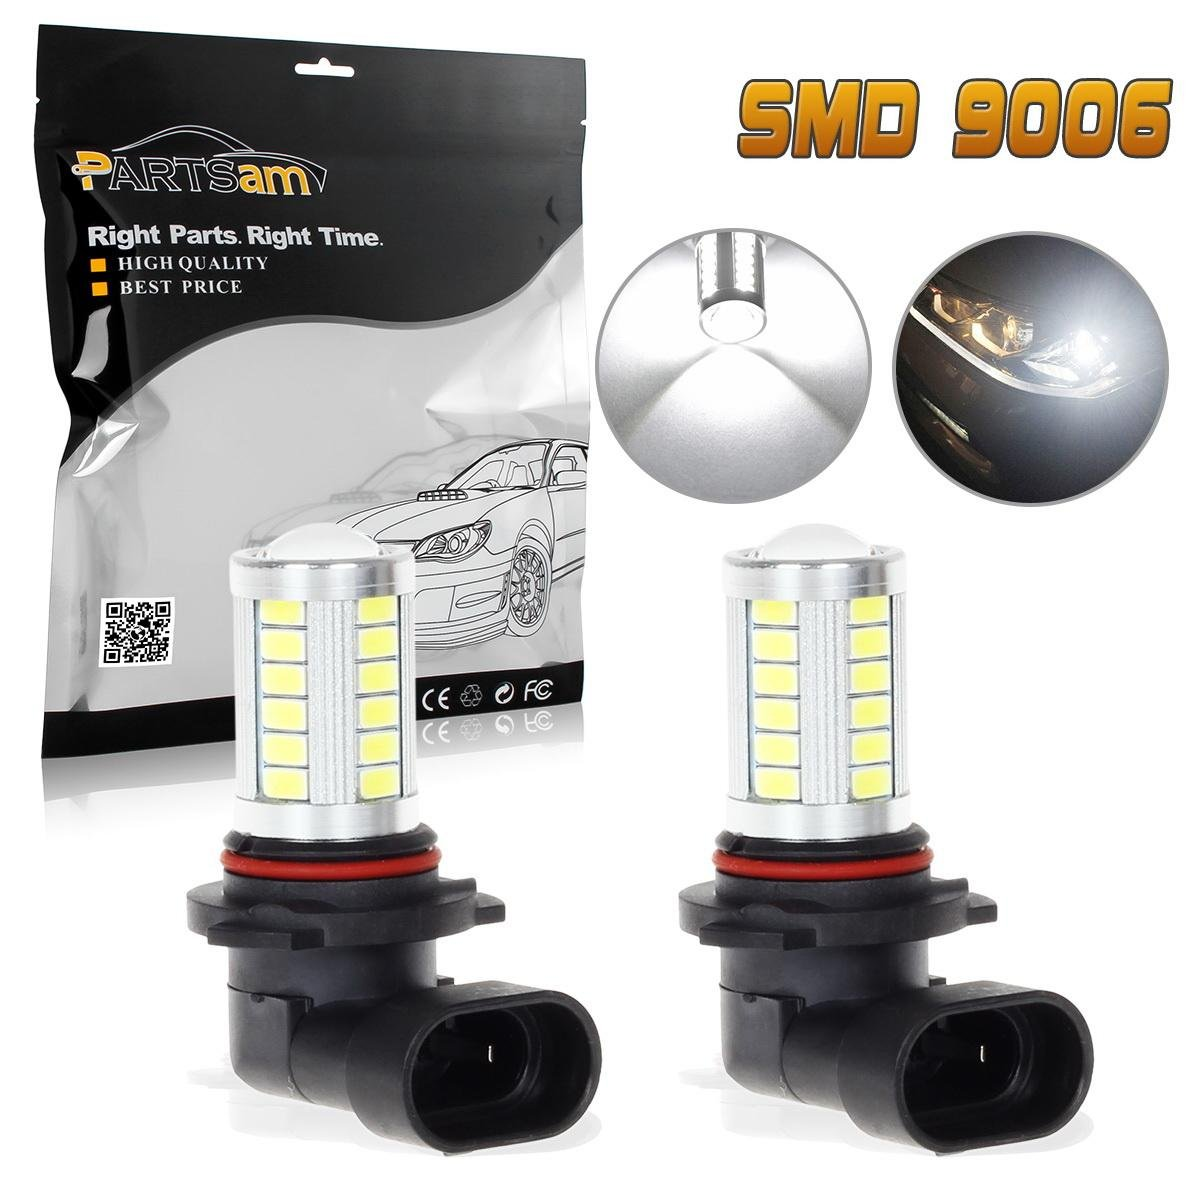 Amazon.com: Partsam 1 Pair 9006 9006XS 33-5730 Chip Epistar Super Power Led Fog Driving Light for Volkswagen Subaru Toyota: Automotive